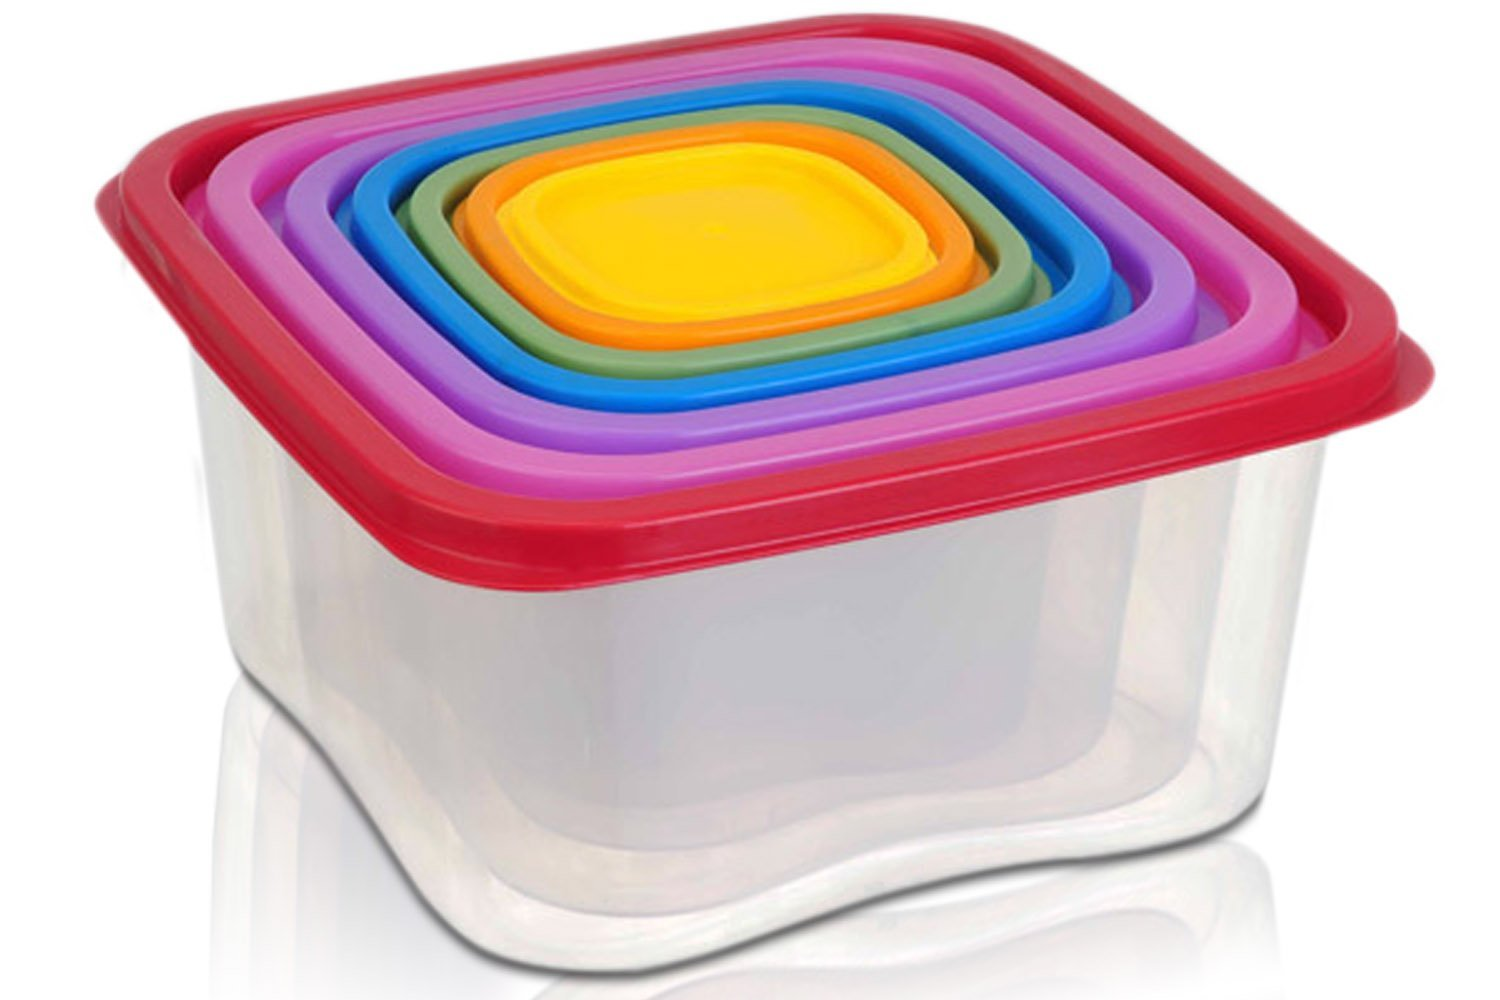 BPA Free Food Storage Containers Becoming Widely Popular in Urban